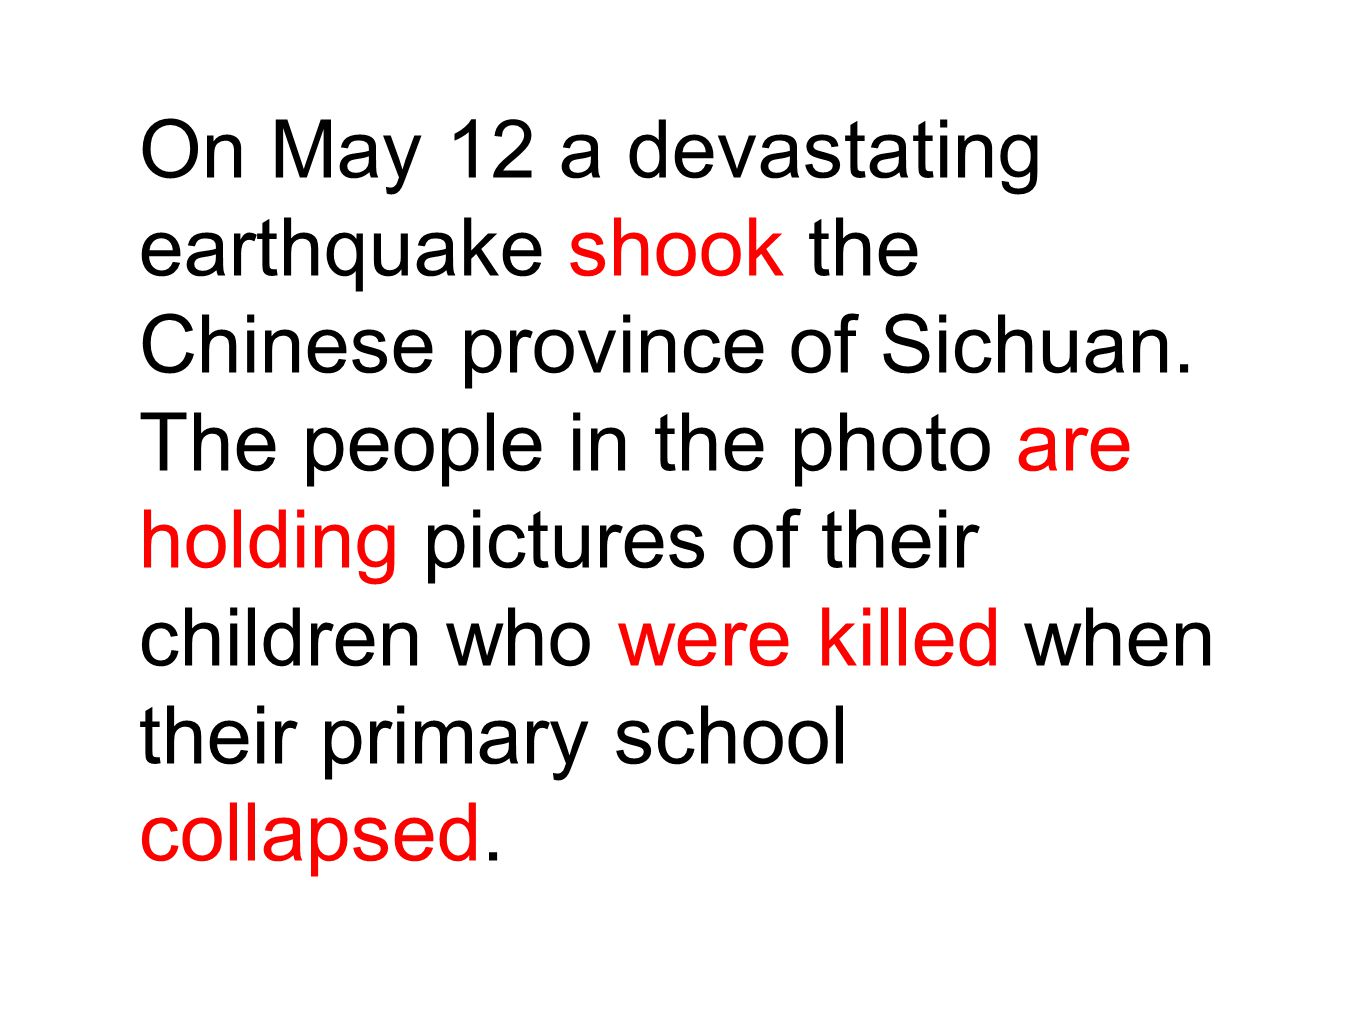 On May 12 a devastating earthquake shook the Chinese province of Sichuan. The people in the photo are holding pictures of their children who were kill